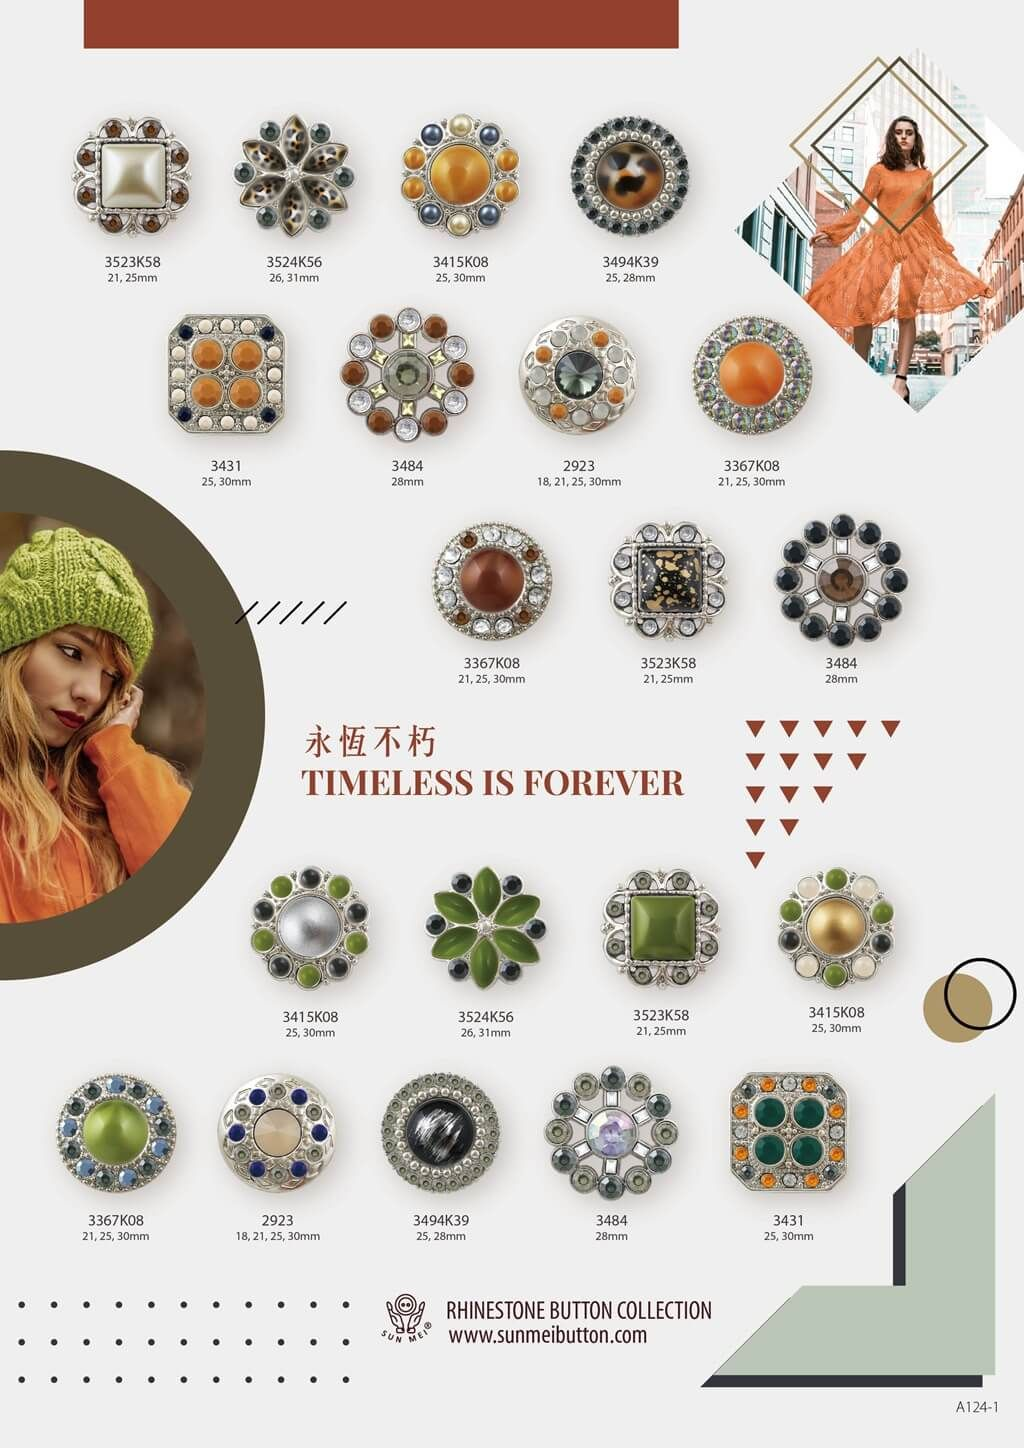 Top picks from the color trends for autumn winter 2020. With our selection including Timeless if Forever, Free Spirit and Autumn Feelings, here's some fashion color 2020 inspiration.  #aw2020 #AW2020 #autumncolors #fashioncolors #wintercolors #colortrend2020 #2020fwcolortrend #2020fashioncolor #garmentaccessories #rhinestones #rhinestonebuttons #buttons #fashiondesign #bling #shinny #crystalcomponent #garment #accessory